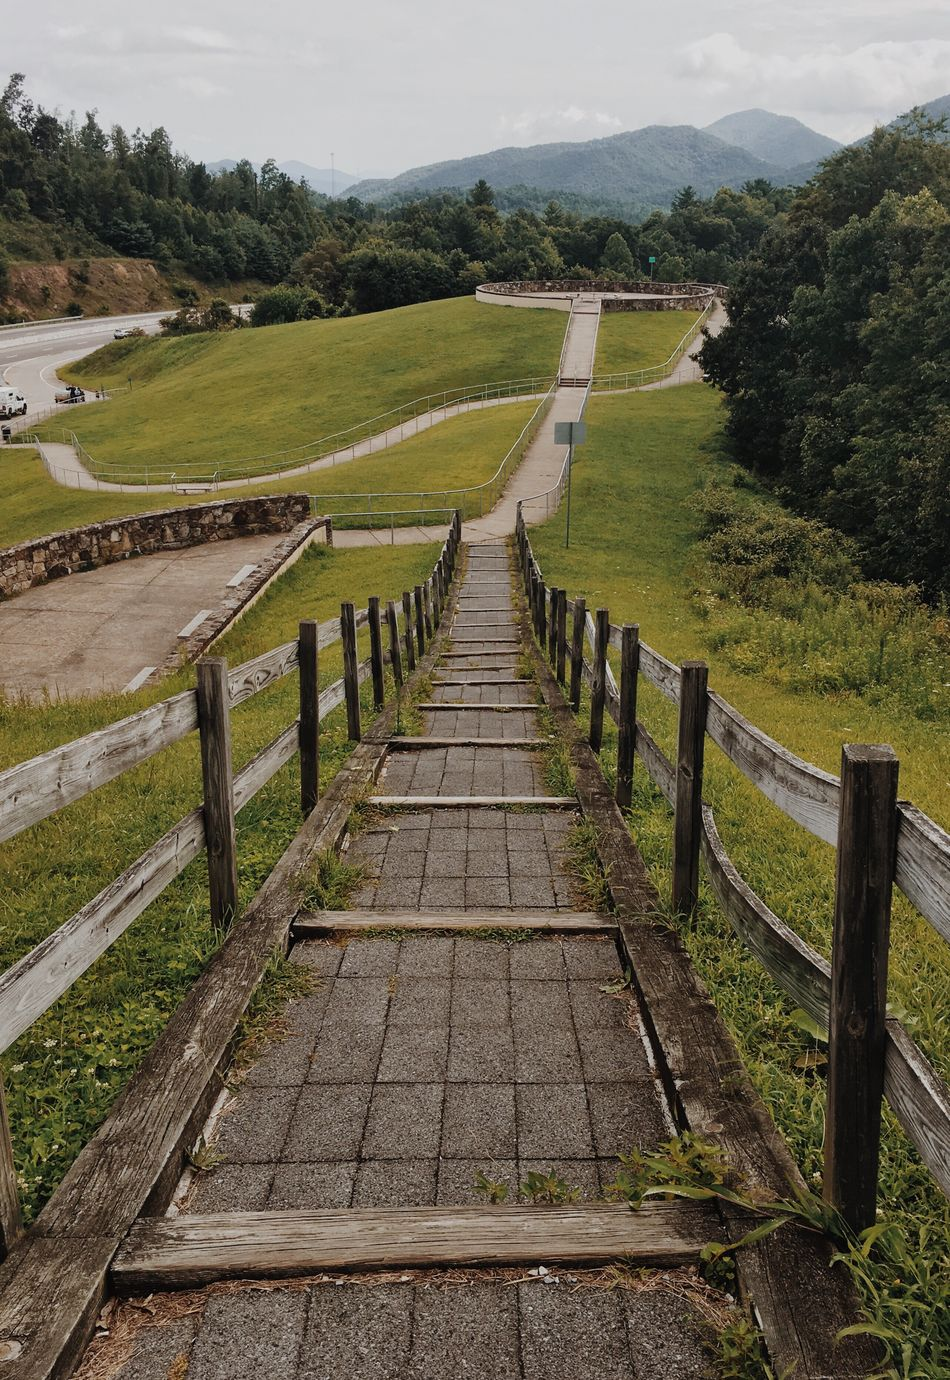 The Way Forward Landscape Tranquil Scene Tranquility Grass Field Narrow Scenics Diminishing Perspective Park - Man Made Space Long Nature Outdoors Day Boardwalk Beauty In Nature Walkway Growth Solitude Green Color